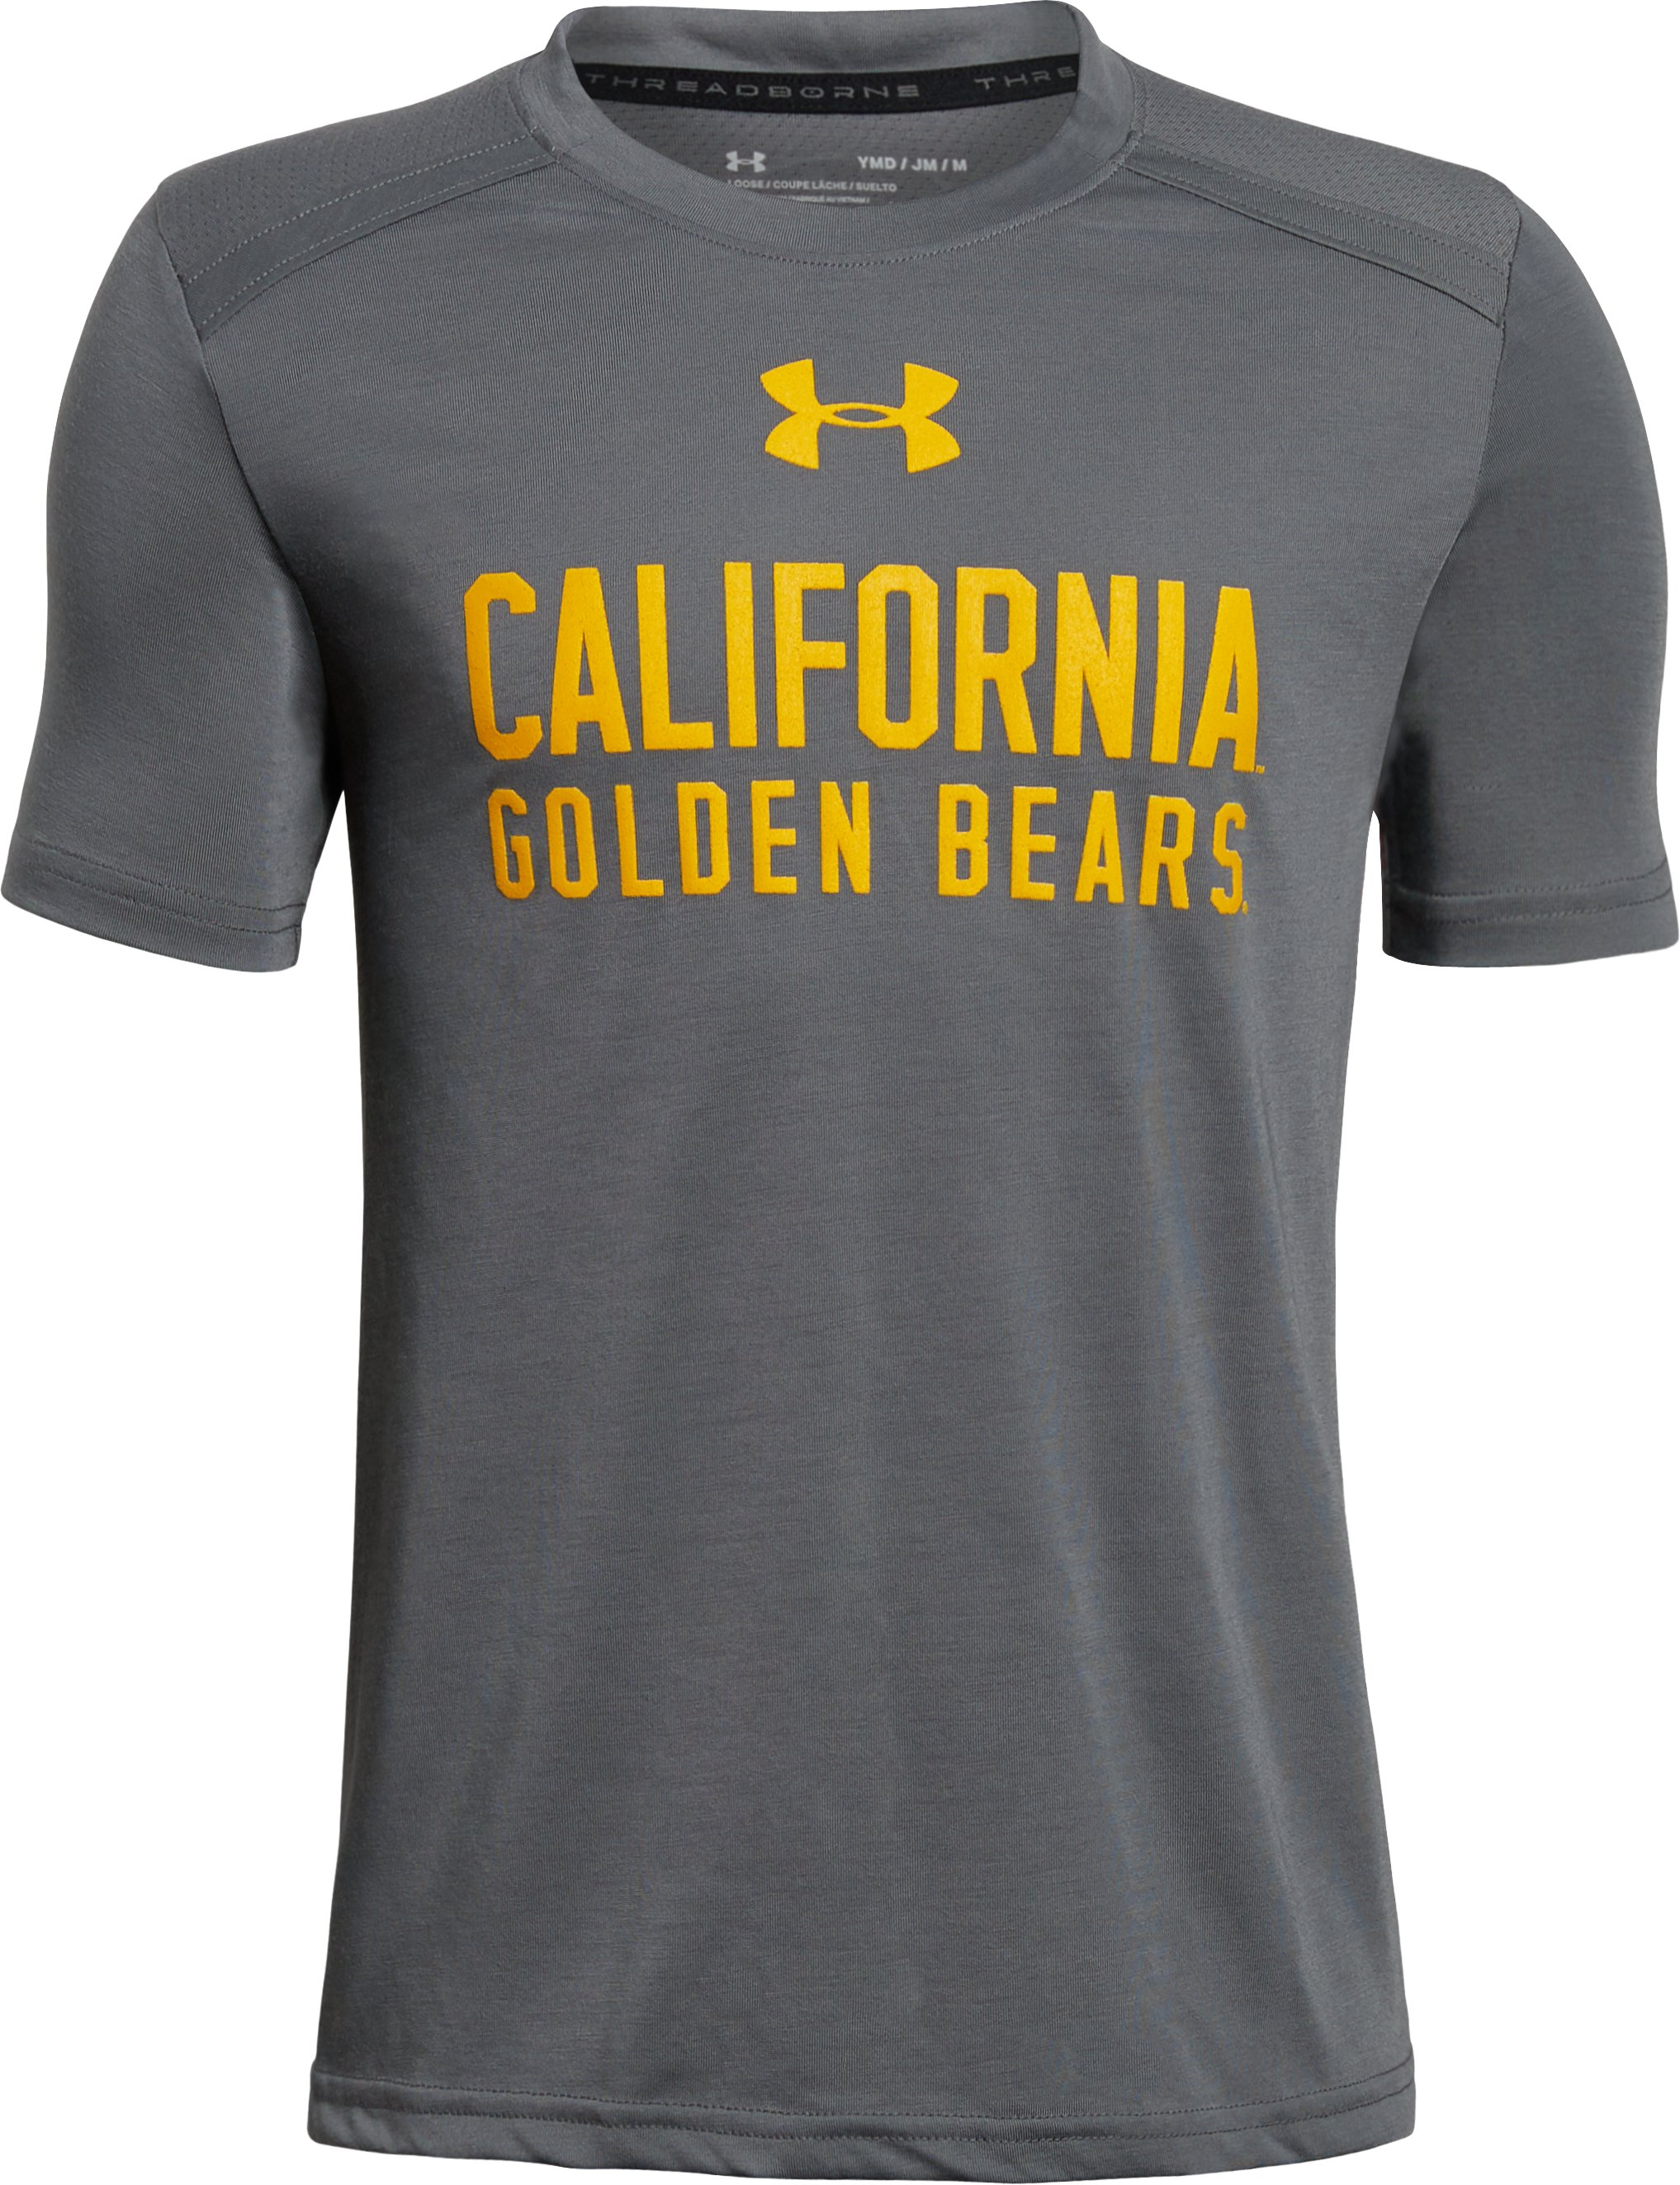 Boys' Cal Bears T-Shirt, Graphite, undefined